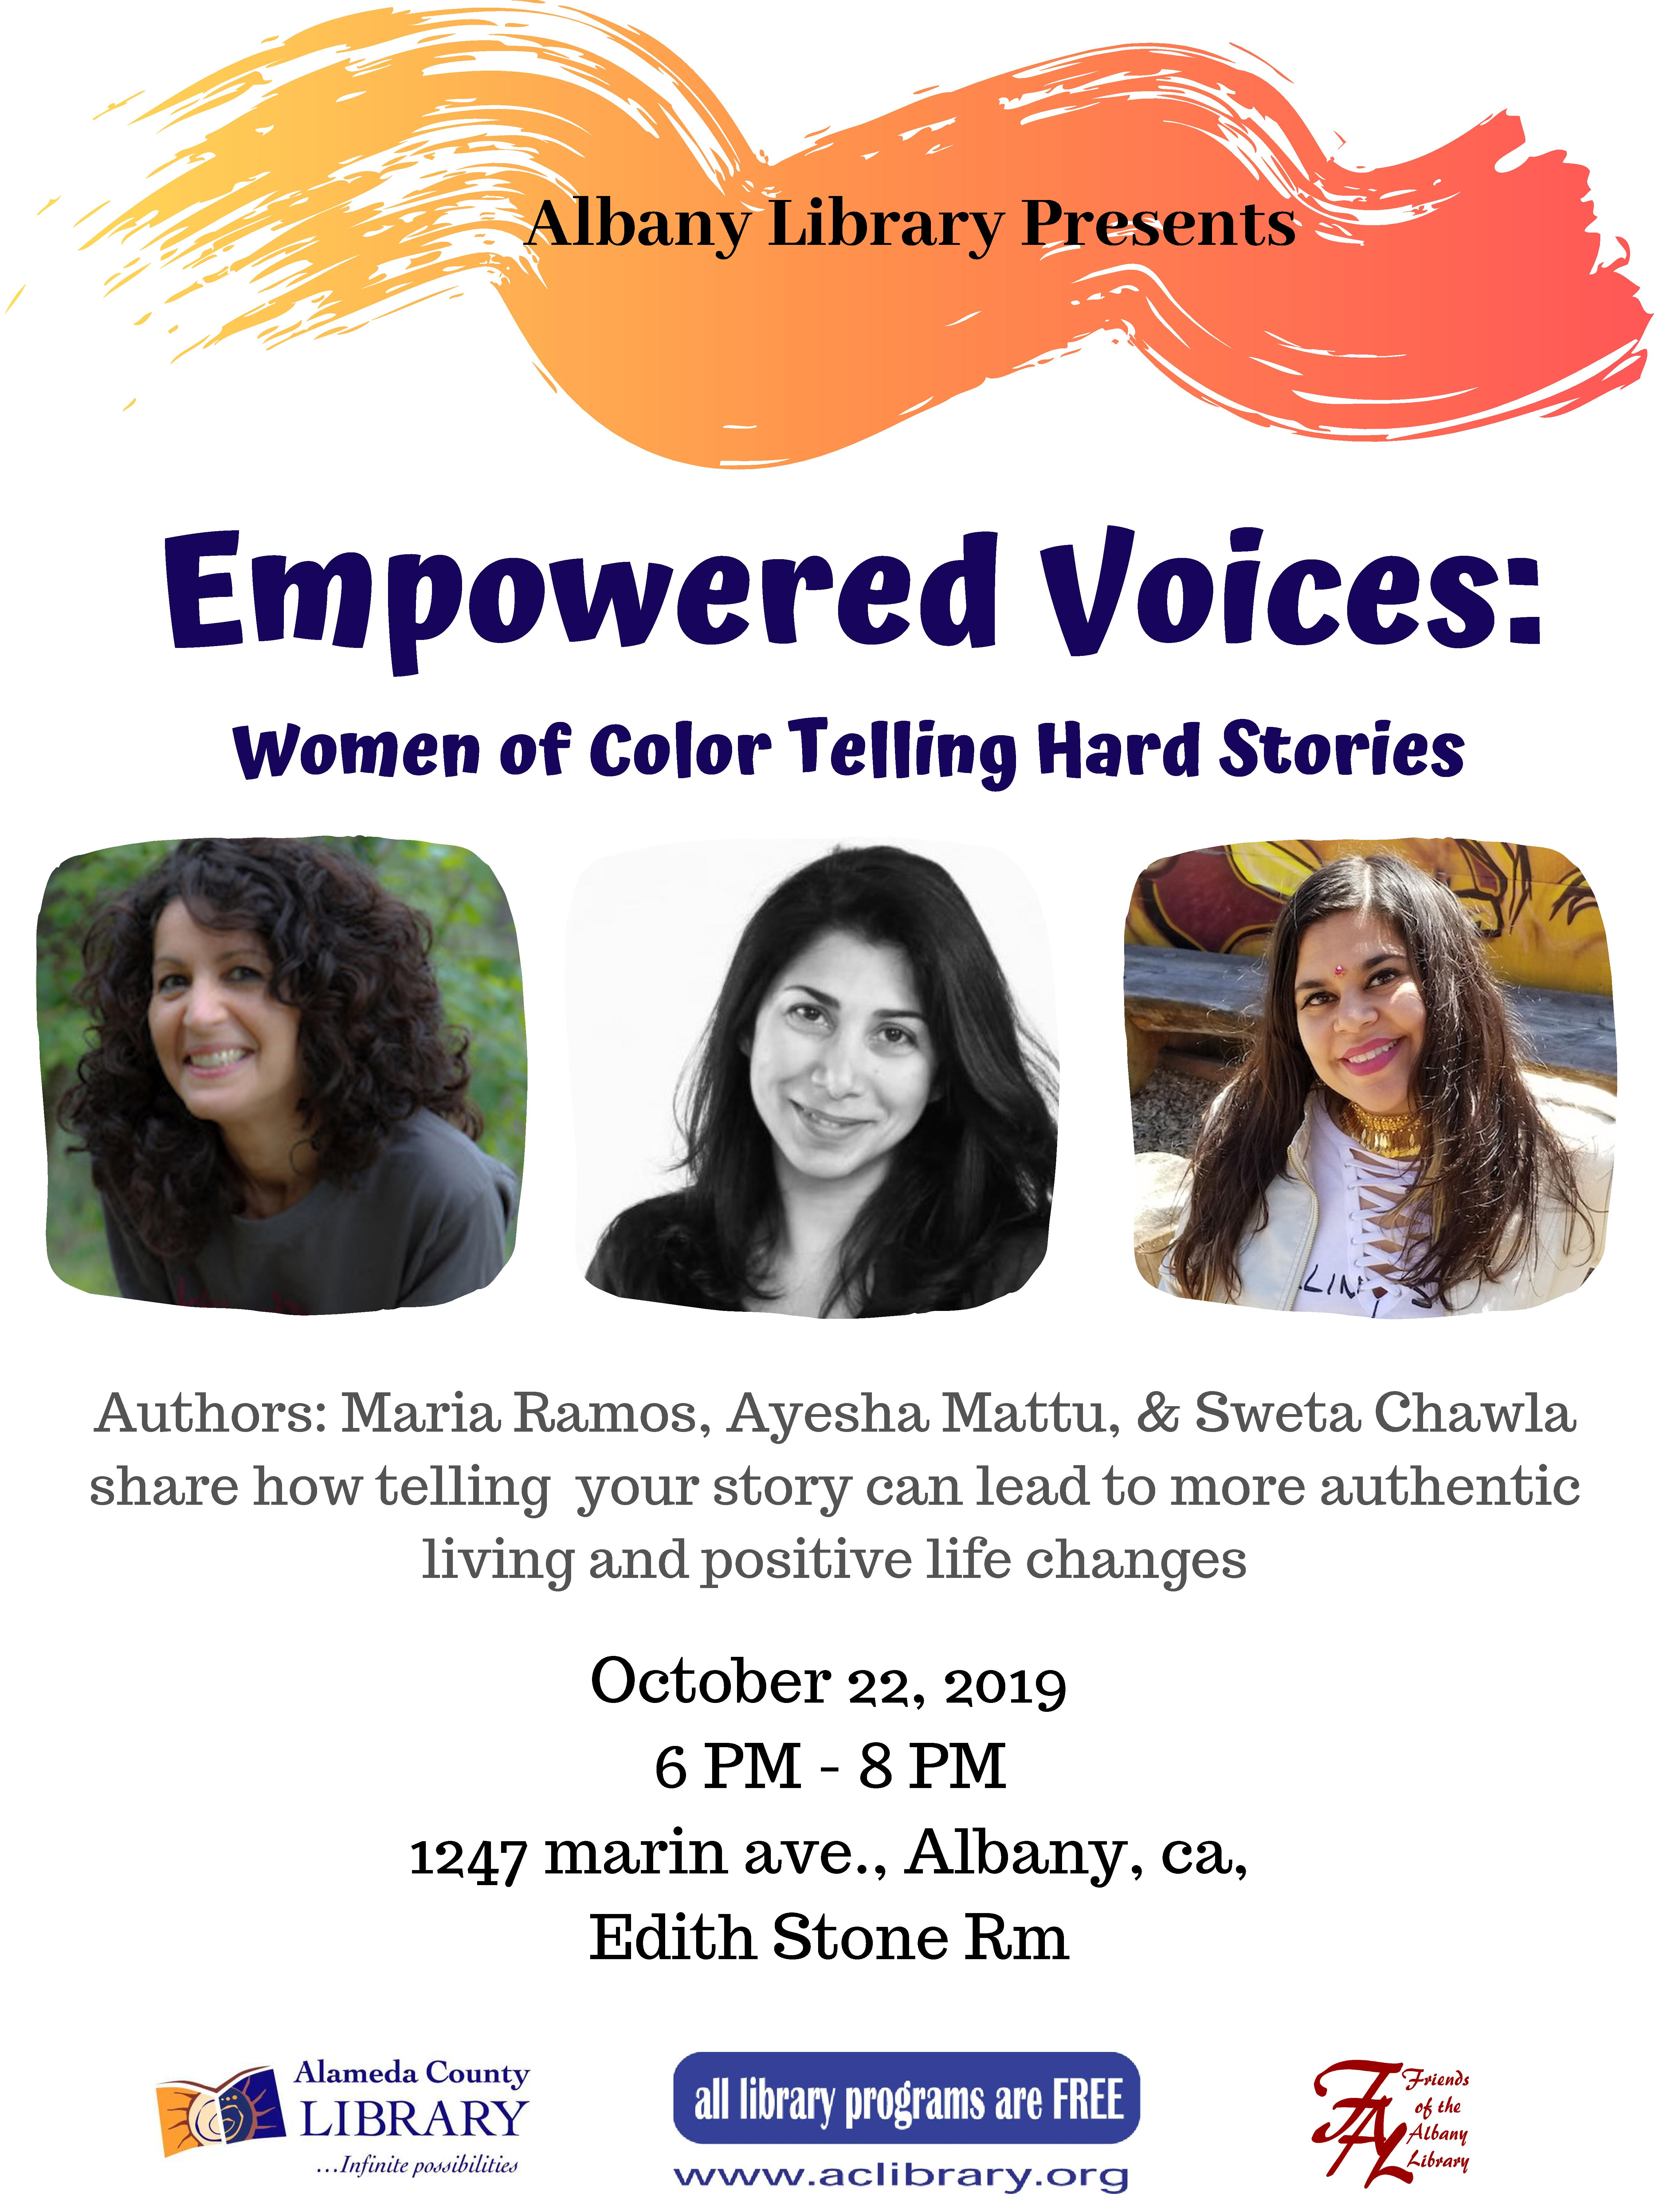 Empowered Voices - Women of Color Telling Hard Stories or We All Benefit by Sharing Our Experiences